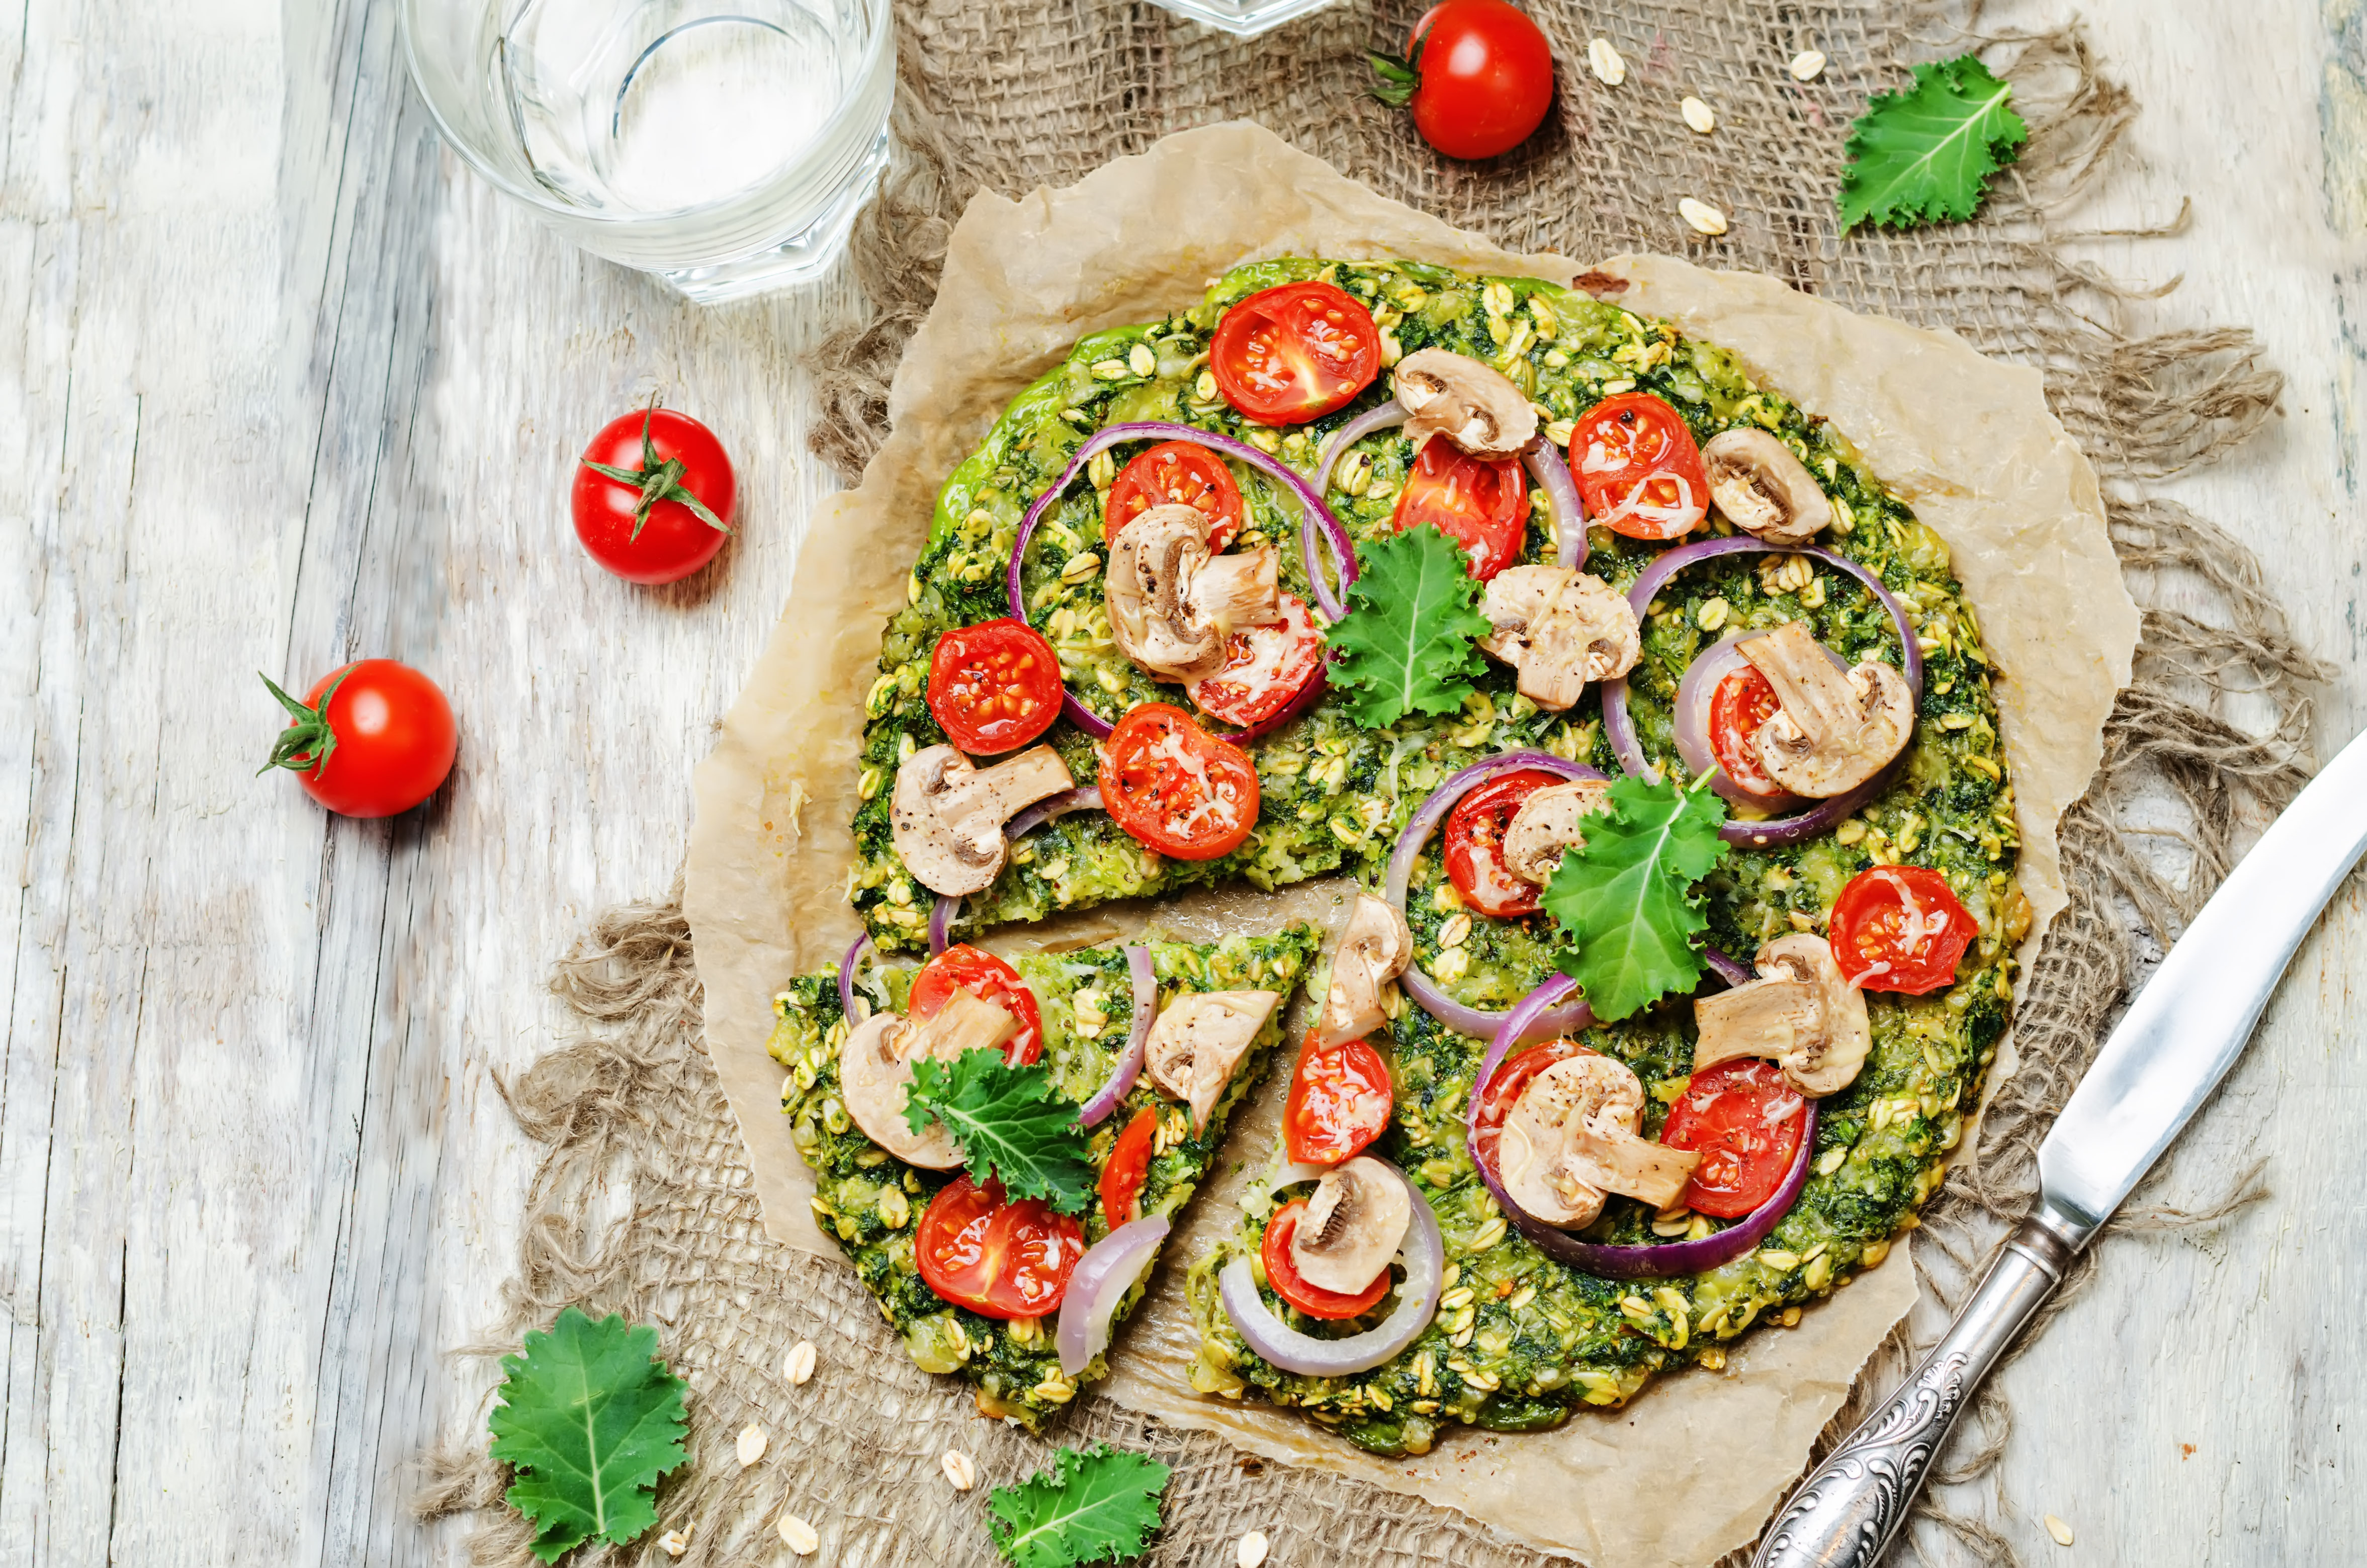 Kale and Oat Pizza Crust